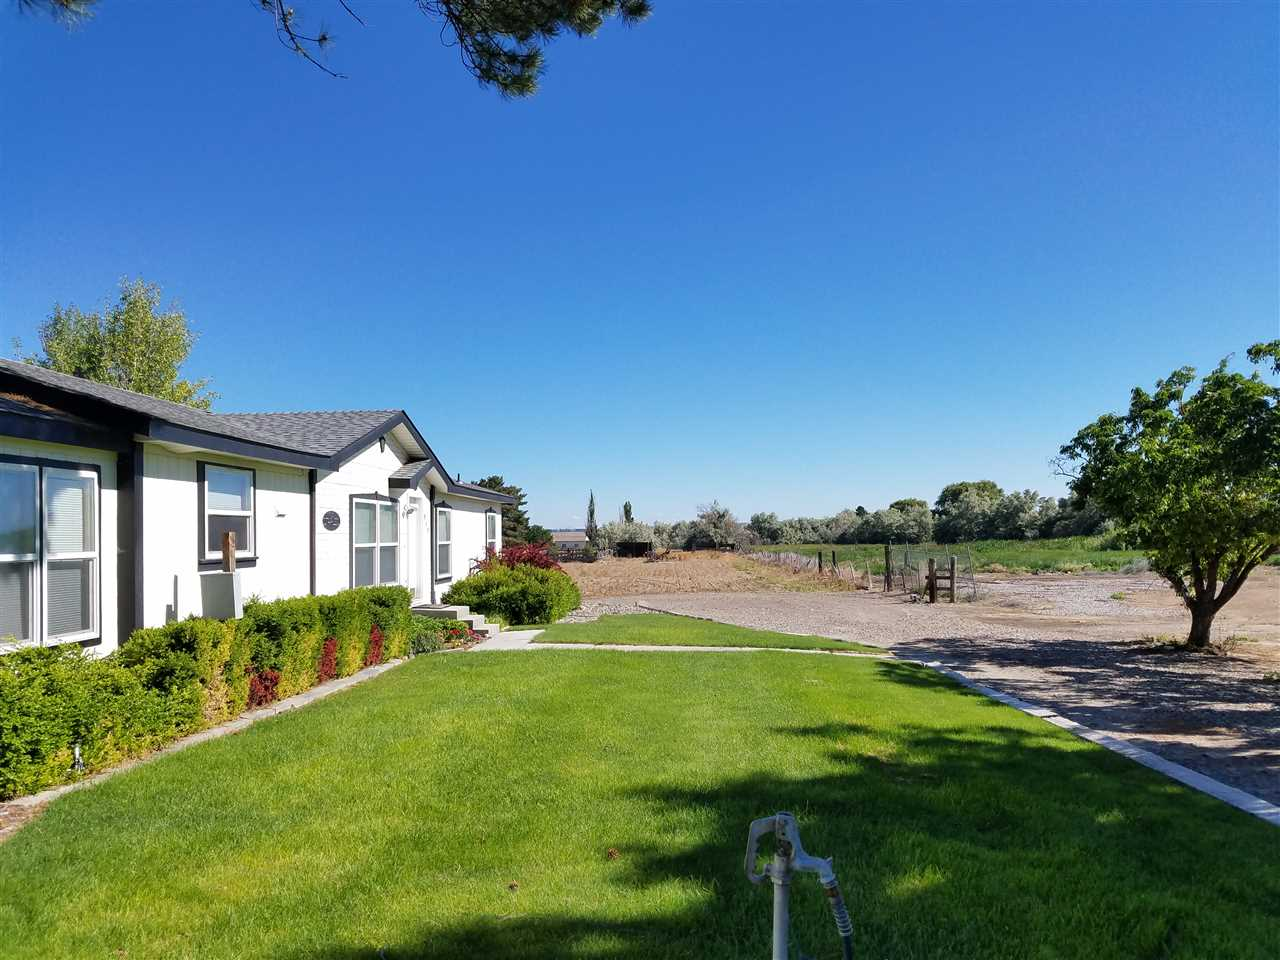 Commercial for Sale at 1923 Pole line Rd. E. 1923 Pole line Rd. E. Twin Falls, Idaho 83301